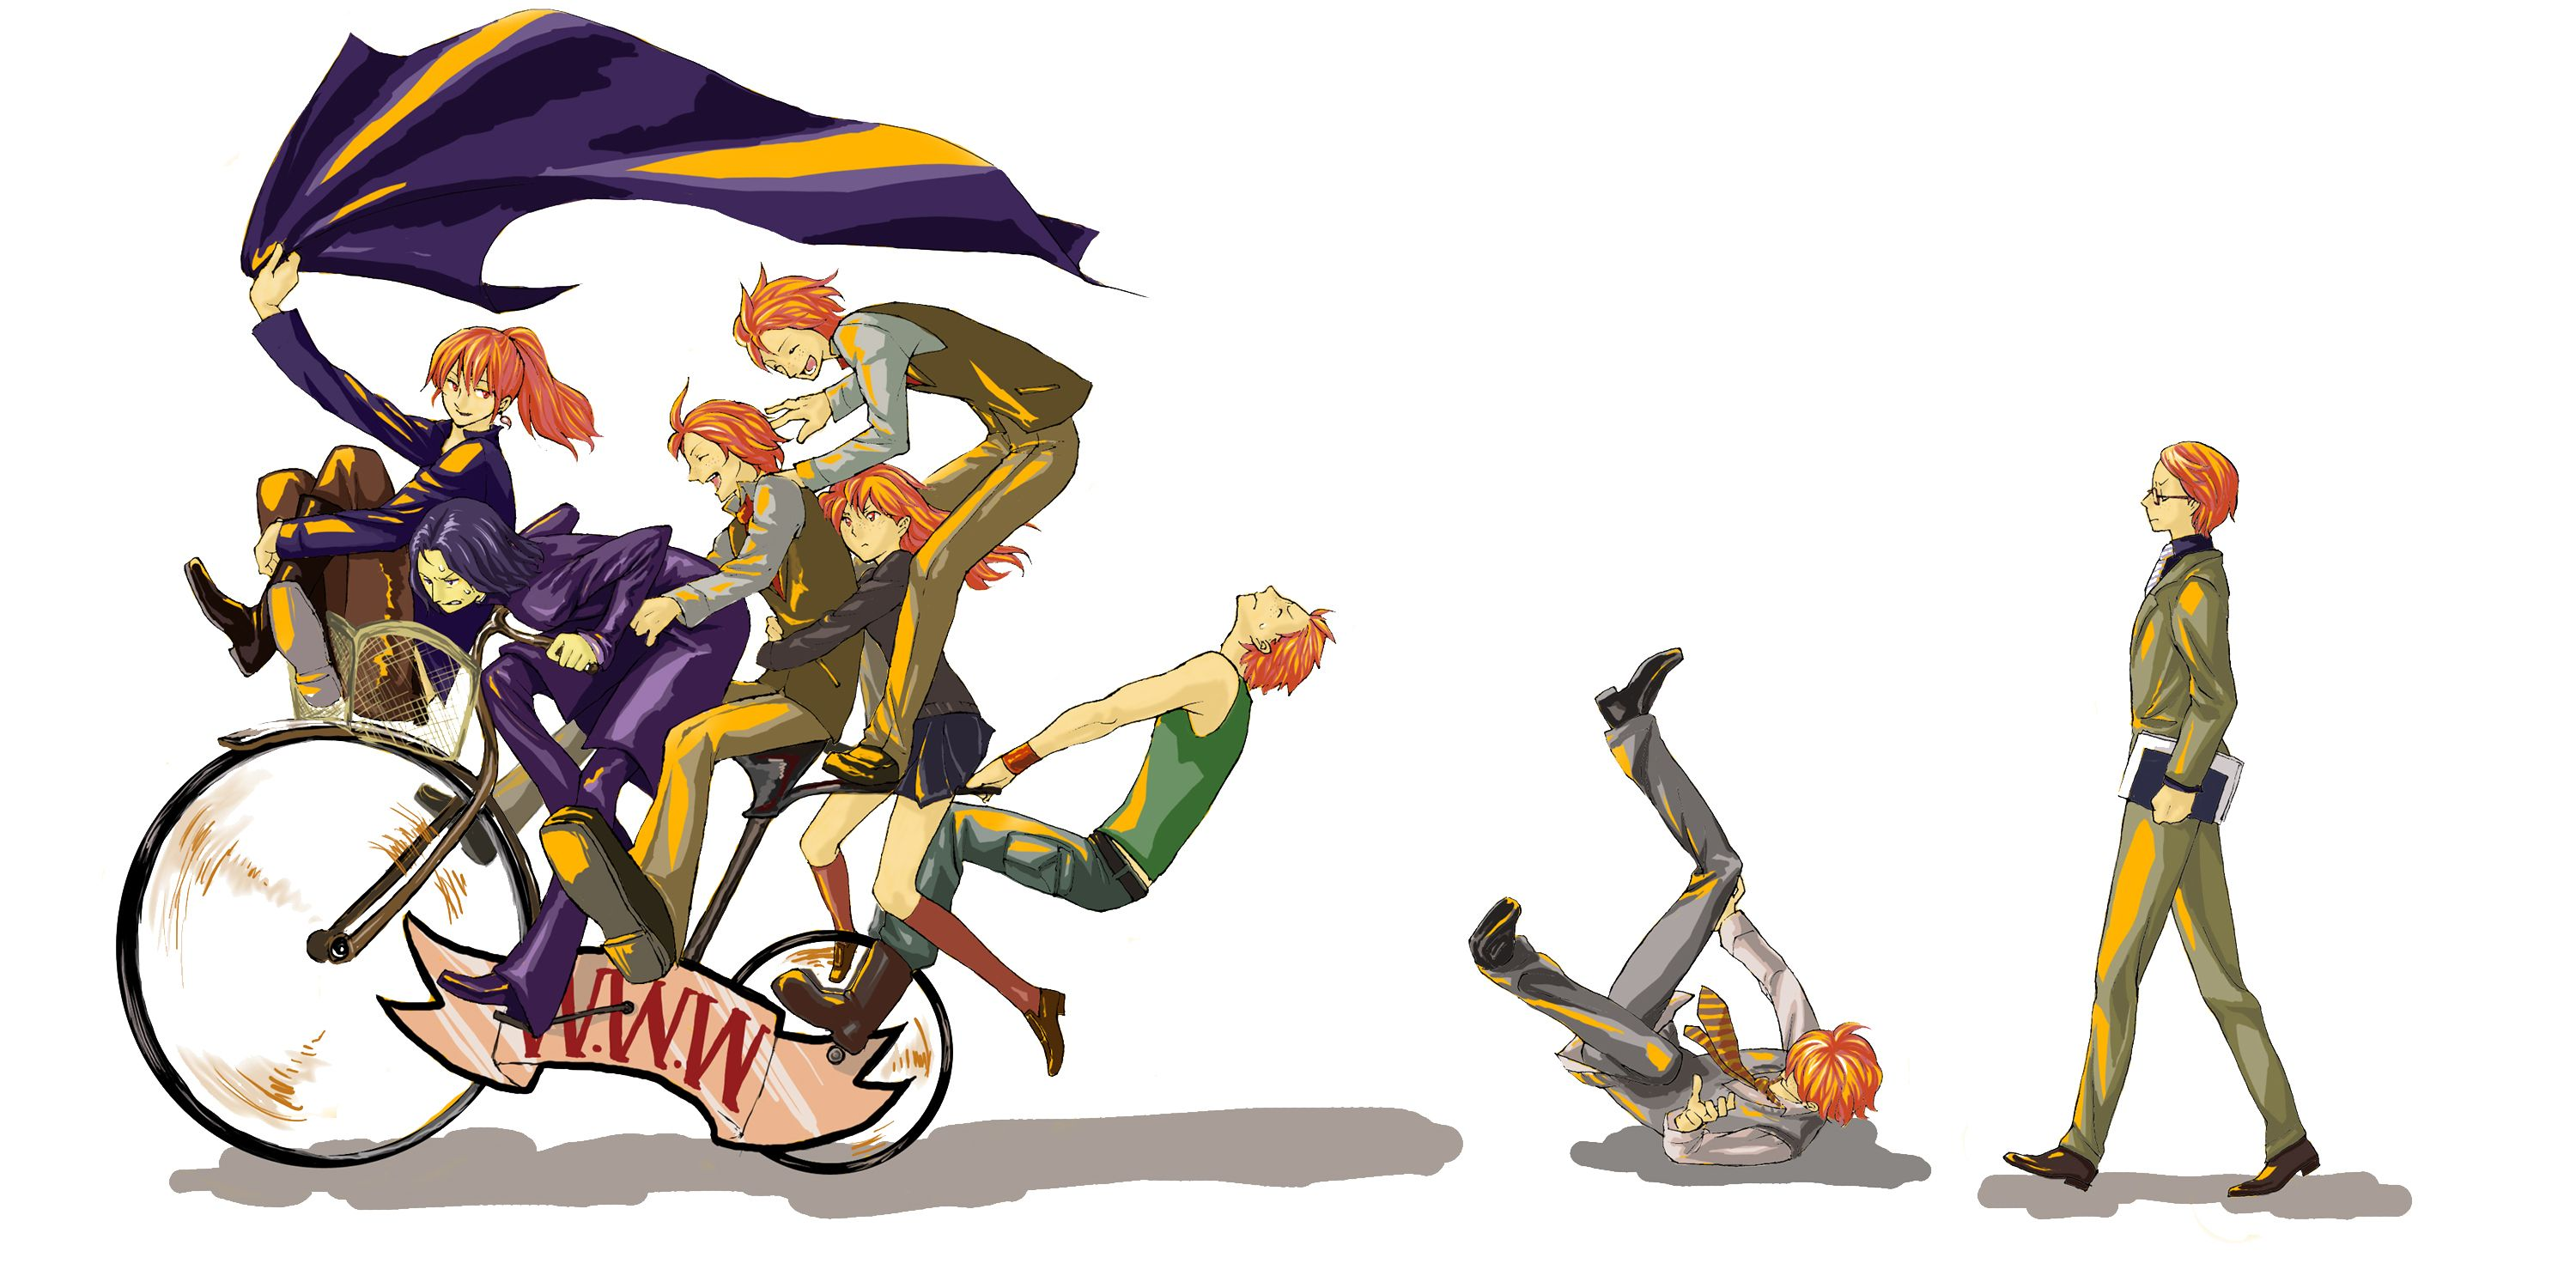 The Weasley kids and a